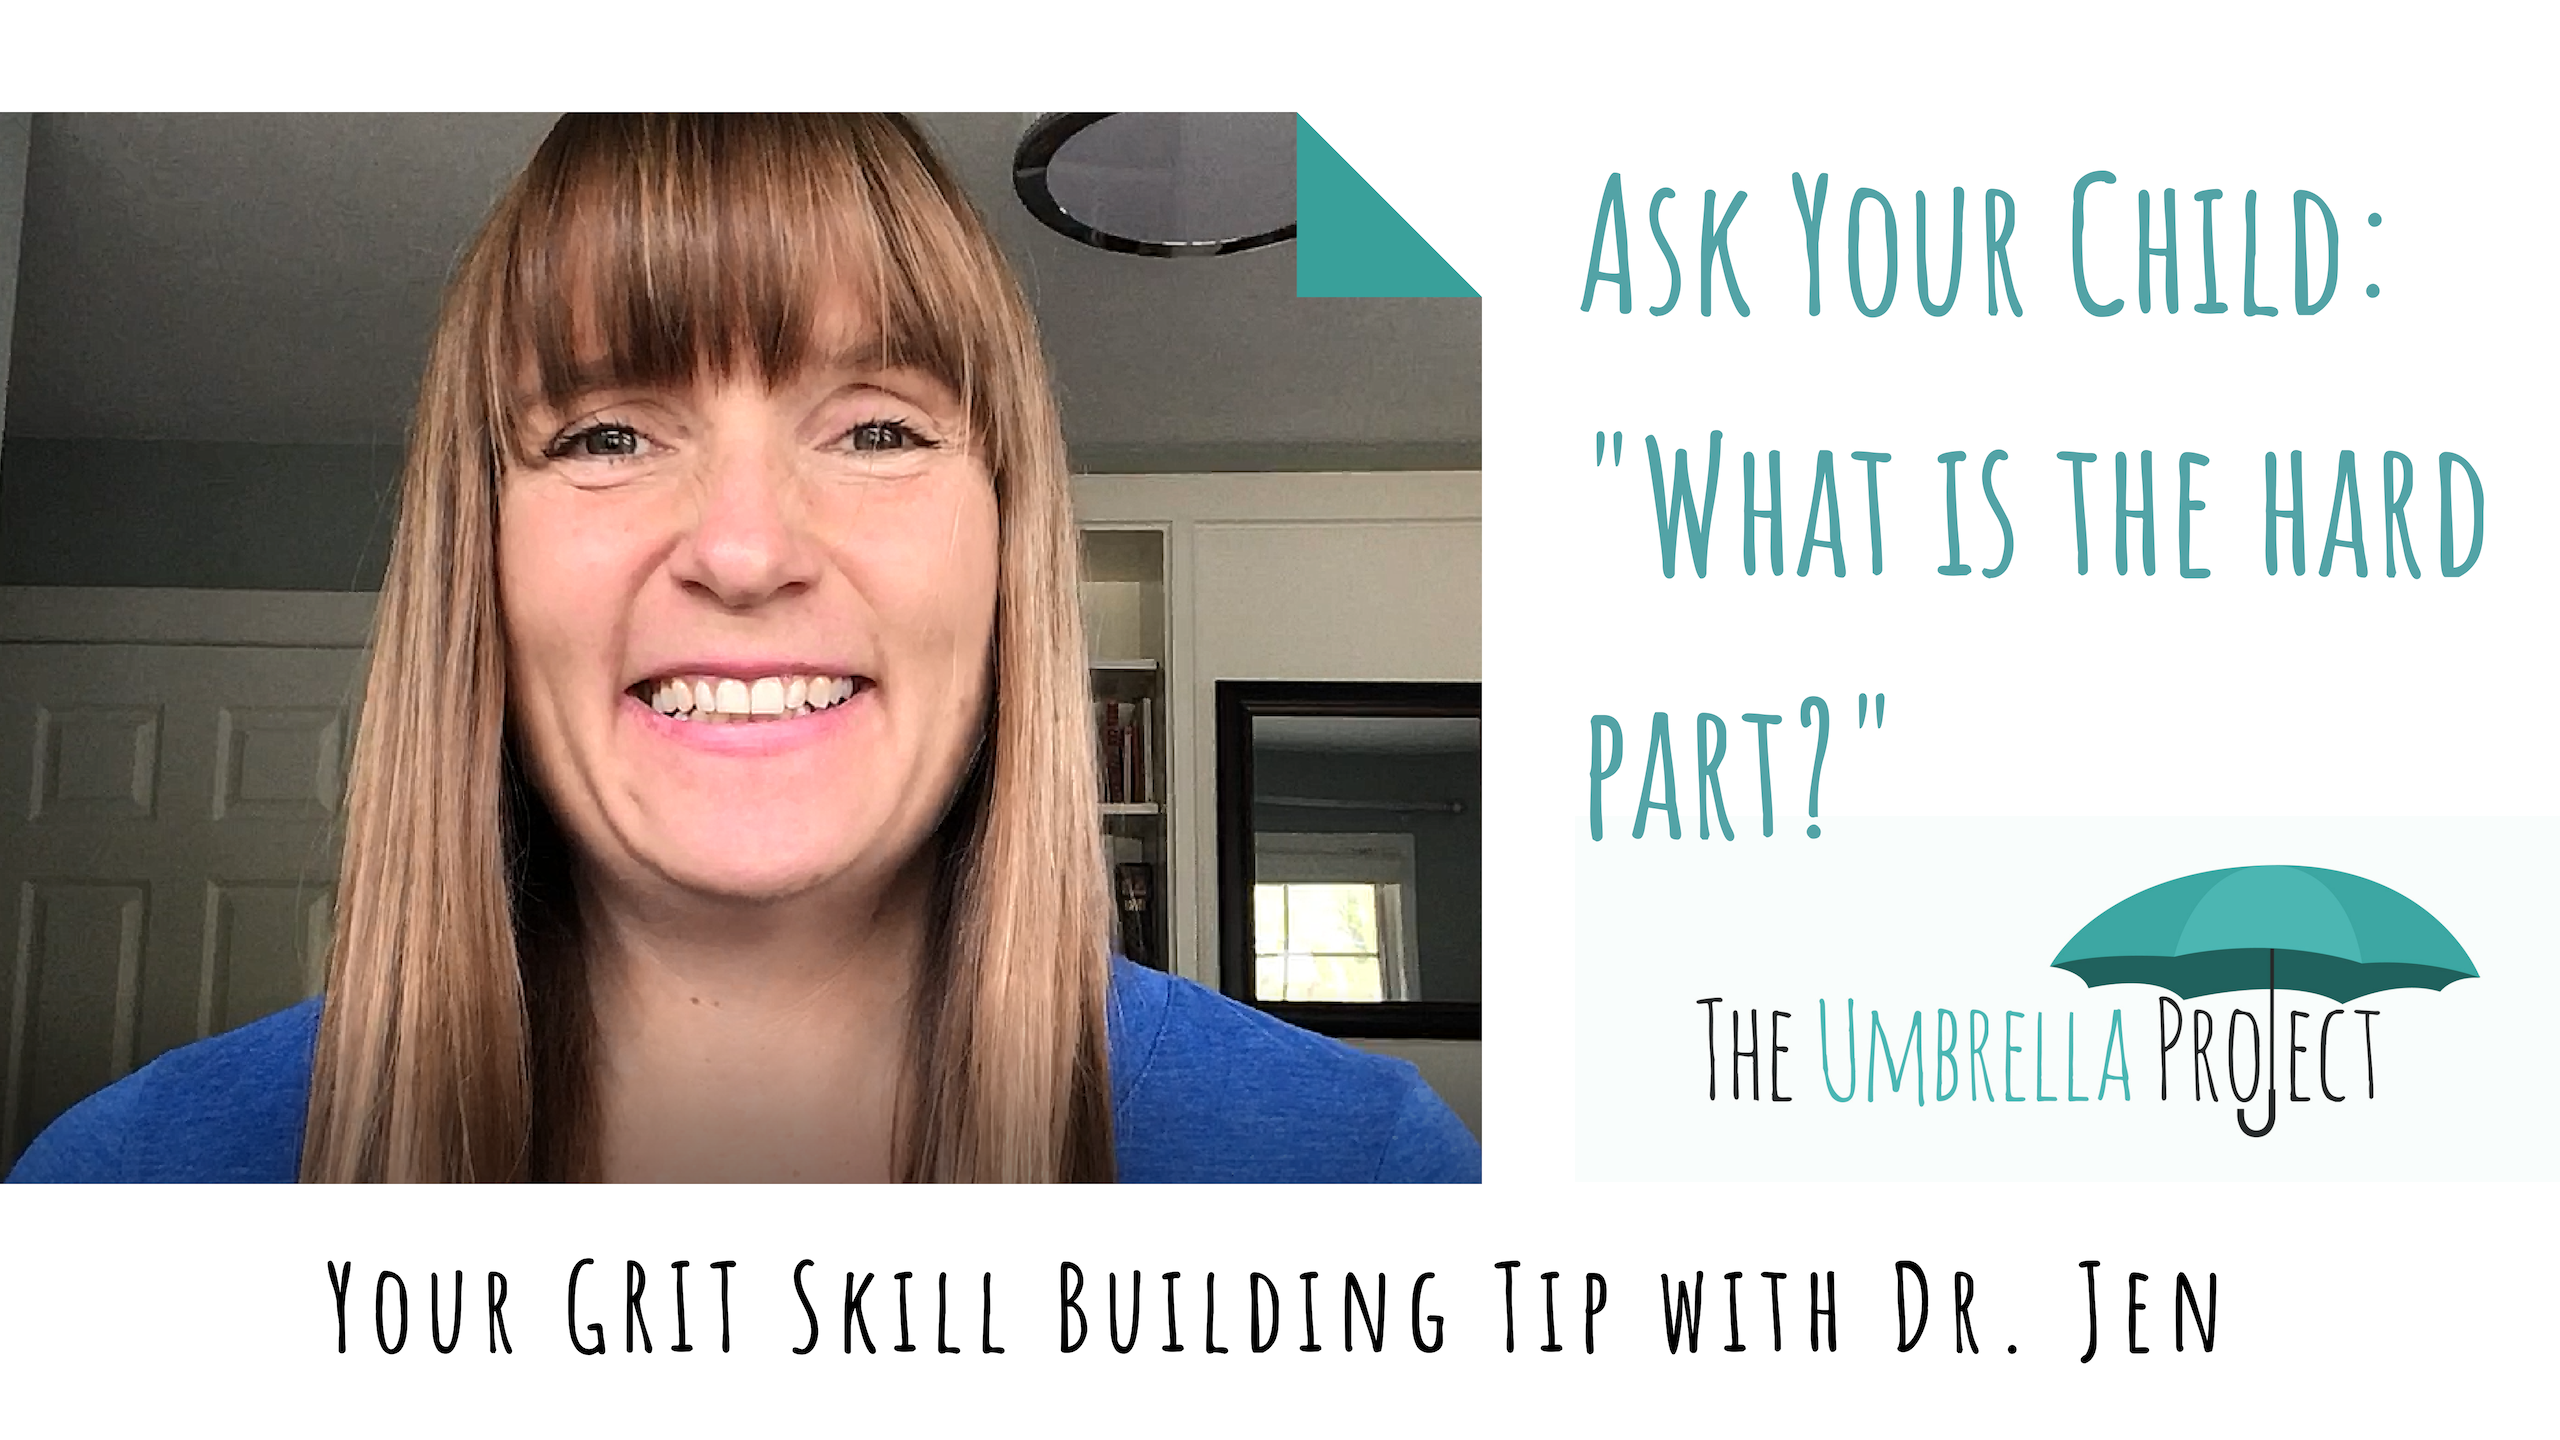 Ask Your Child This Question: Your Grit Skill Building Tip with Dr. Jen